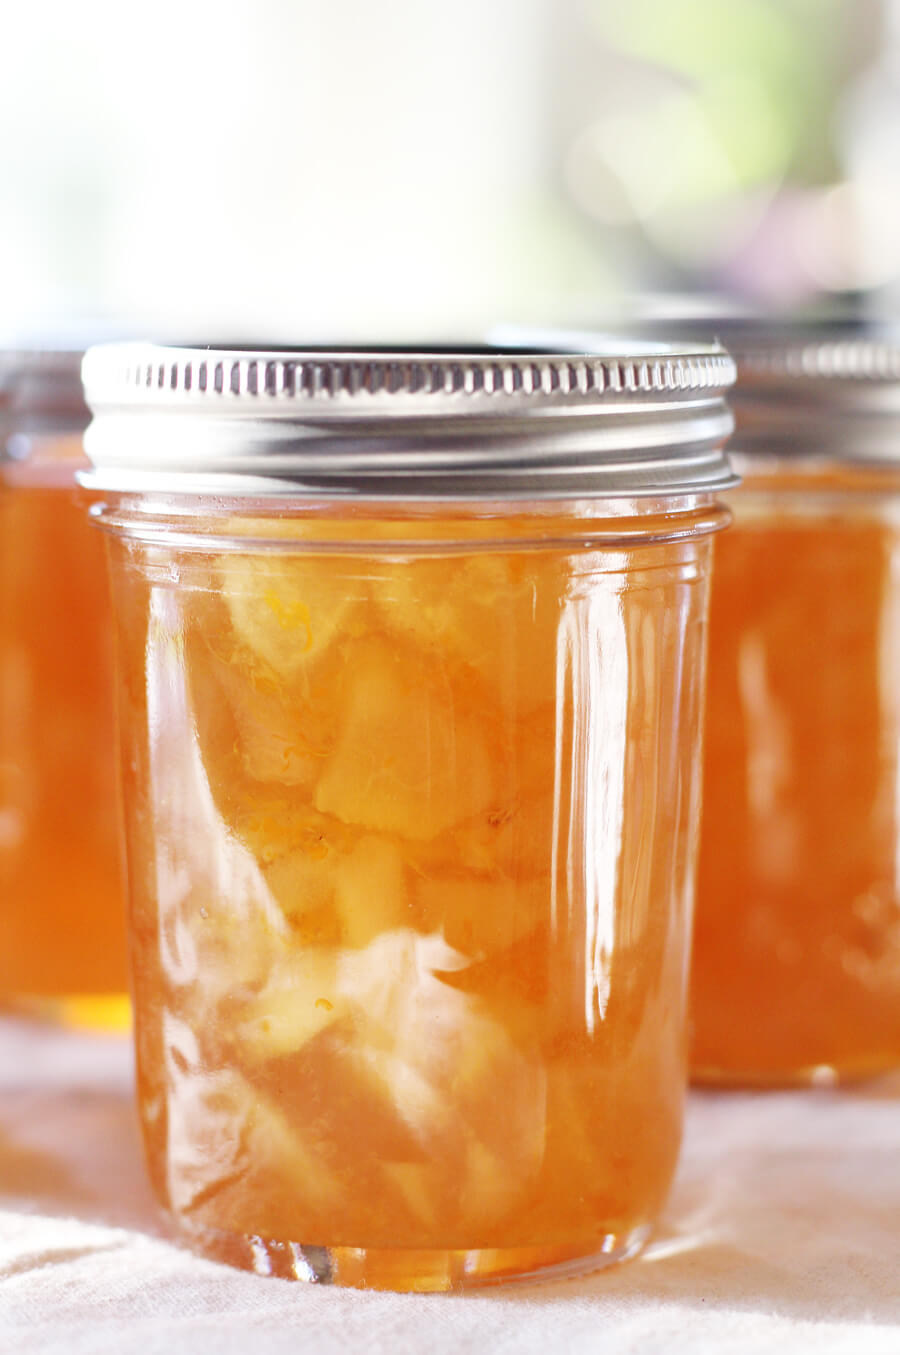 A bright, golden jar of pear preserves.